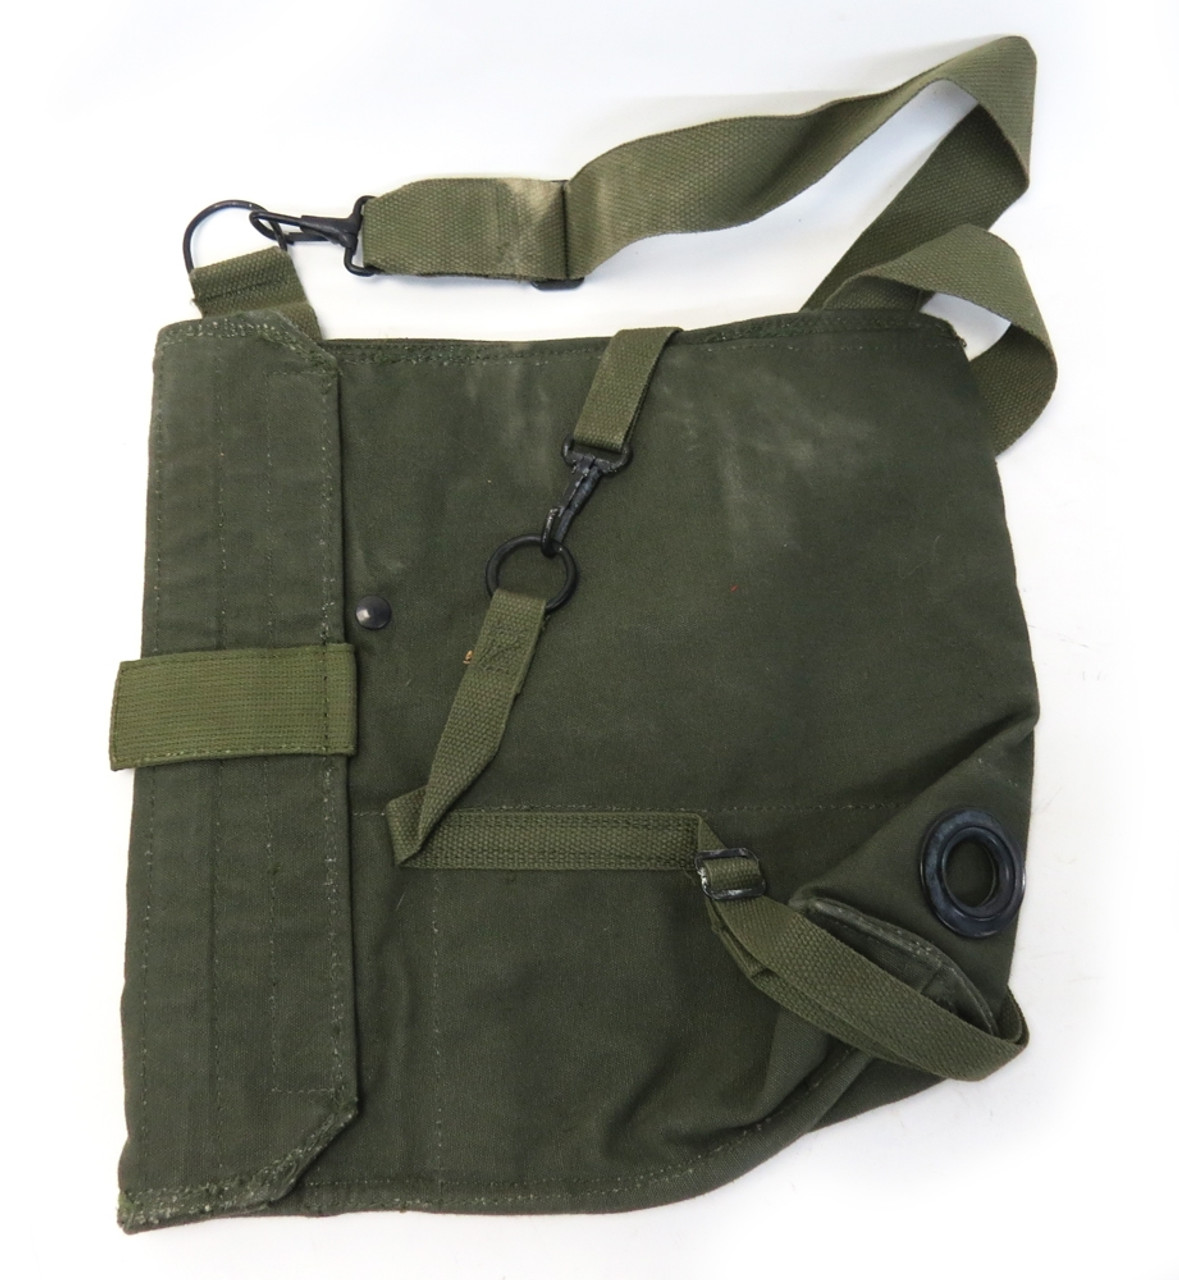 GI M24 Gas Mask Bag from Hessen Antique